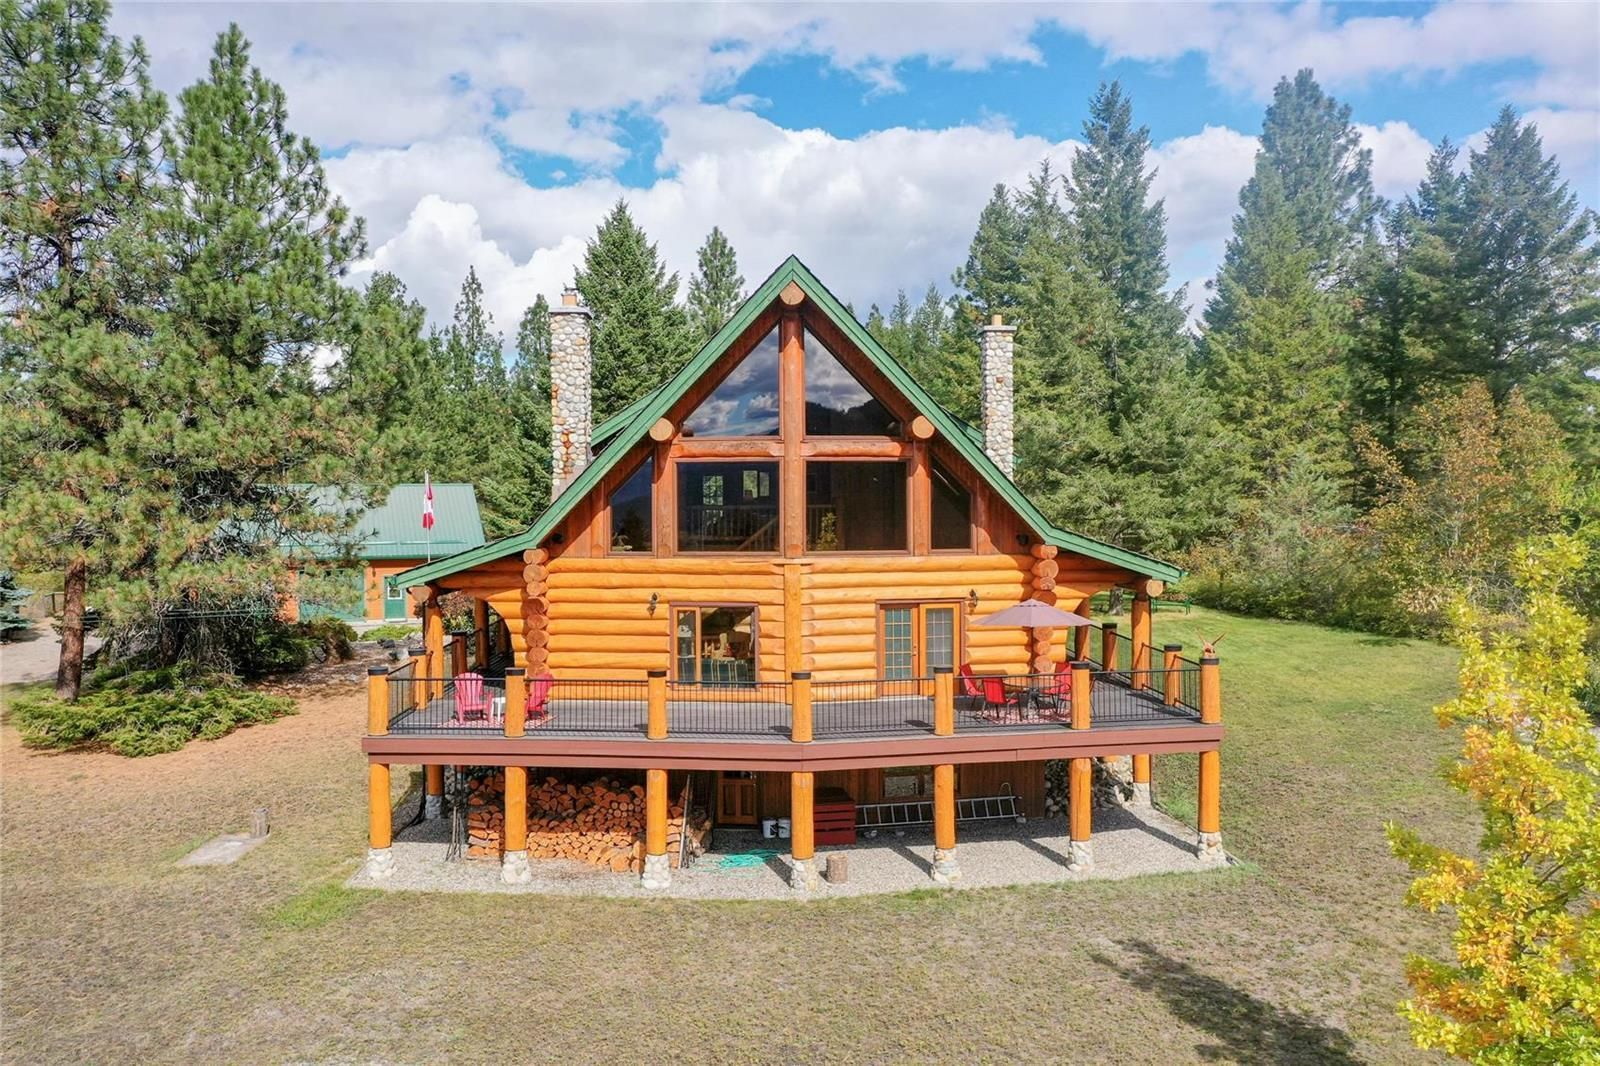 Main Photo: 20 Valeview Road, Lumby Valley: Vernon Real Estate Listing: MLS®# 10241160